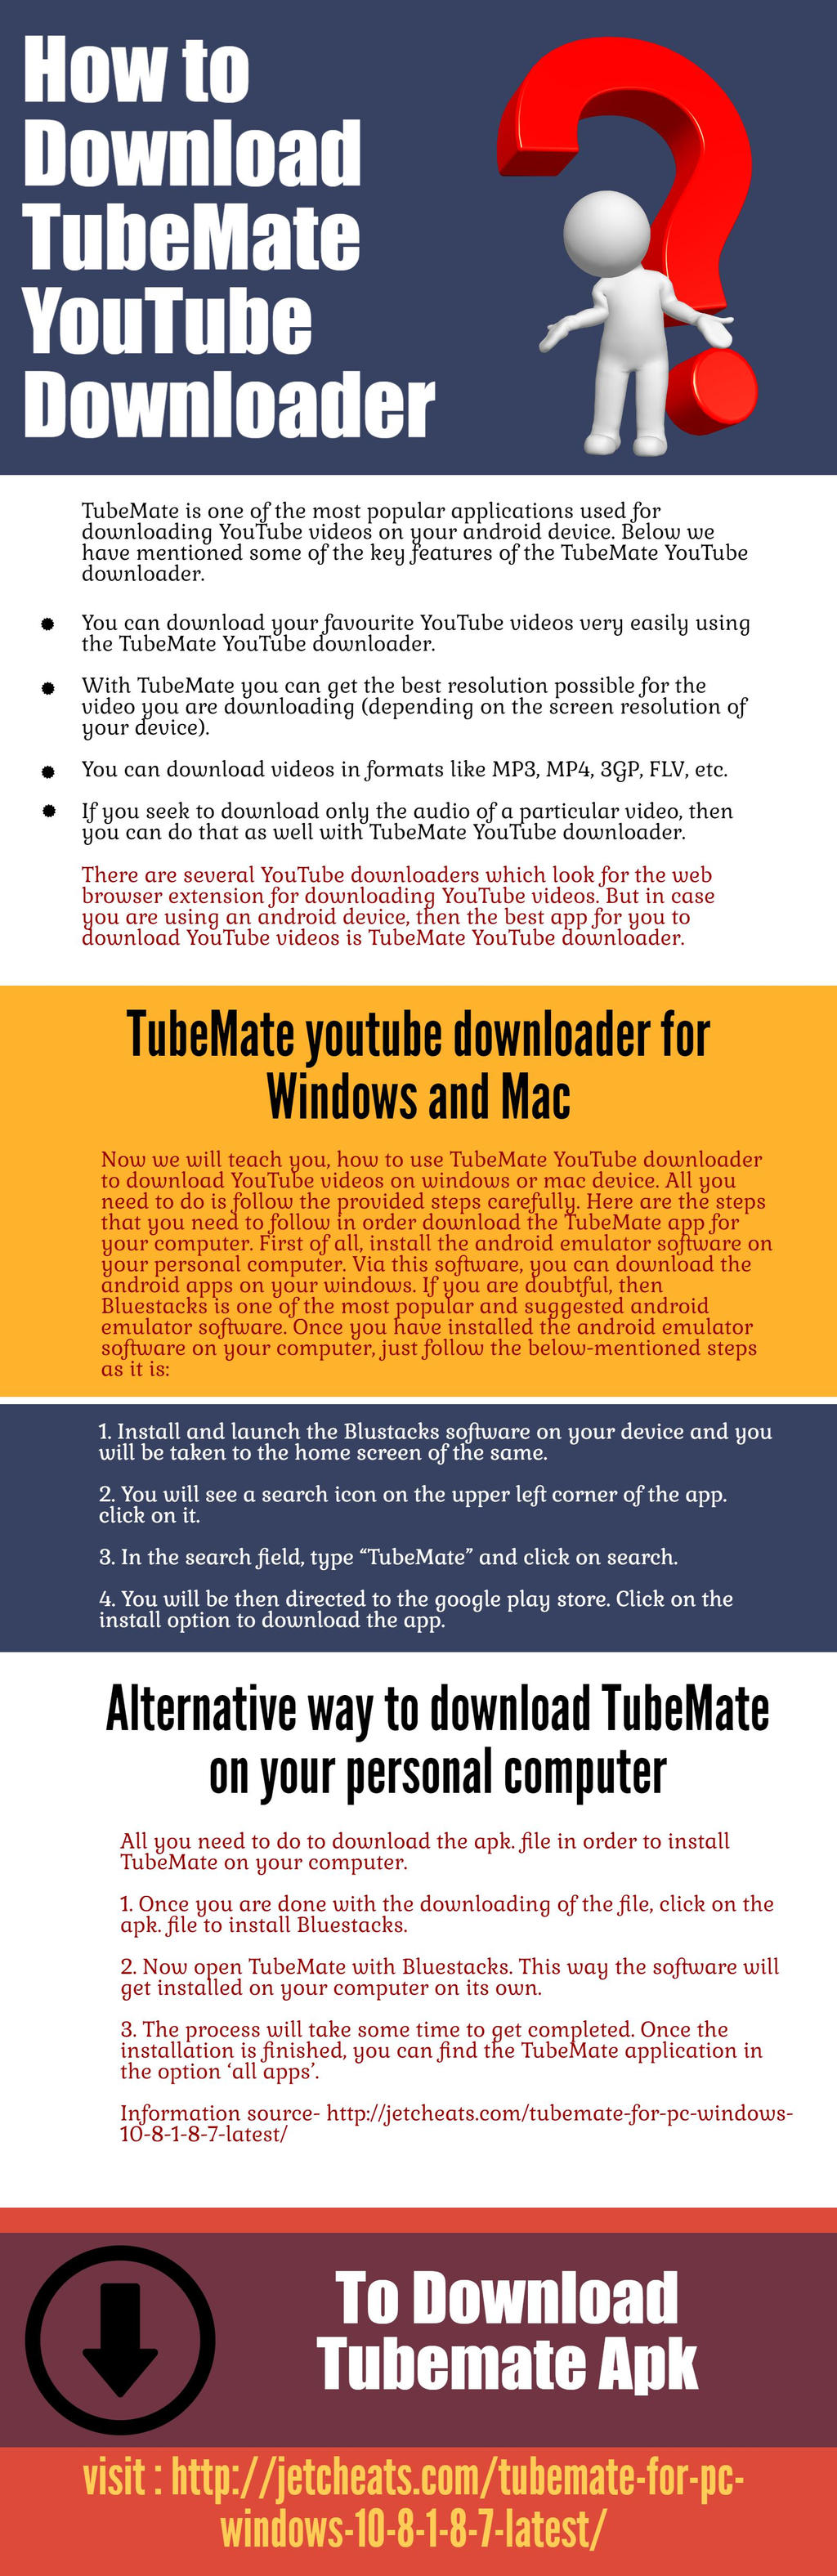 free download tubemate youtube downloader for windows 10